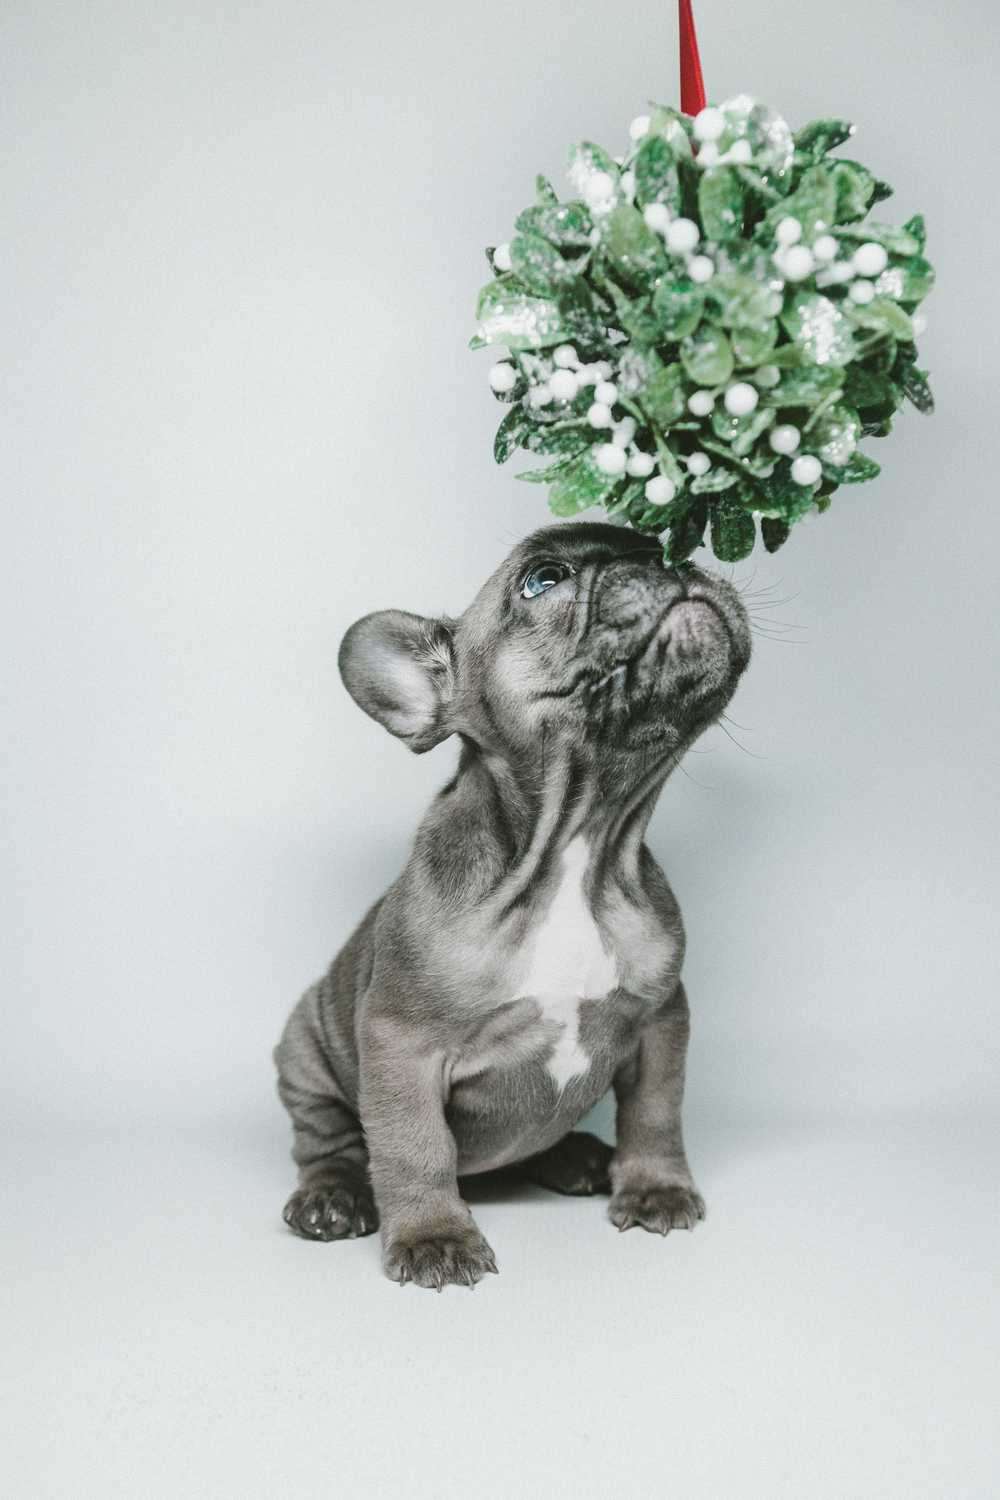 short-coated gray puppy smelling hanging flower